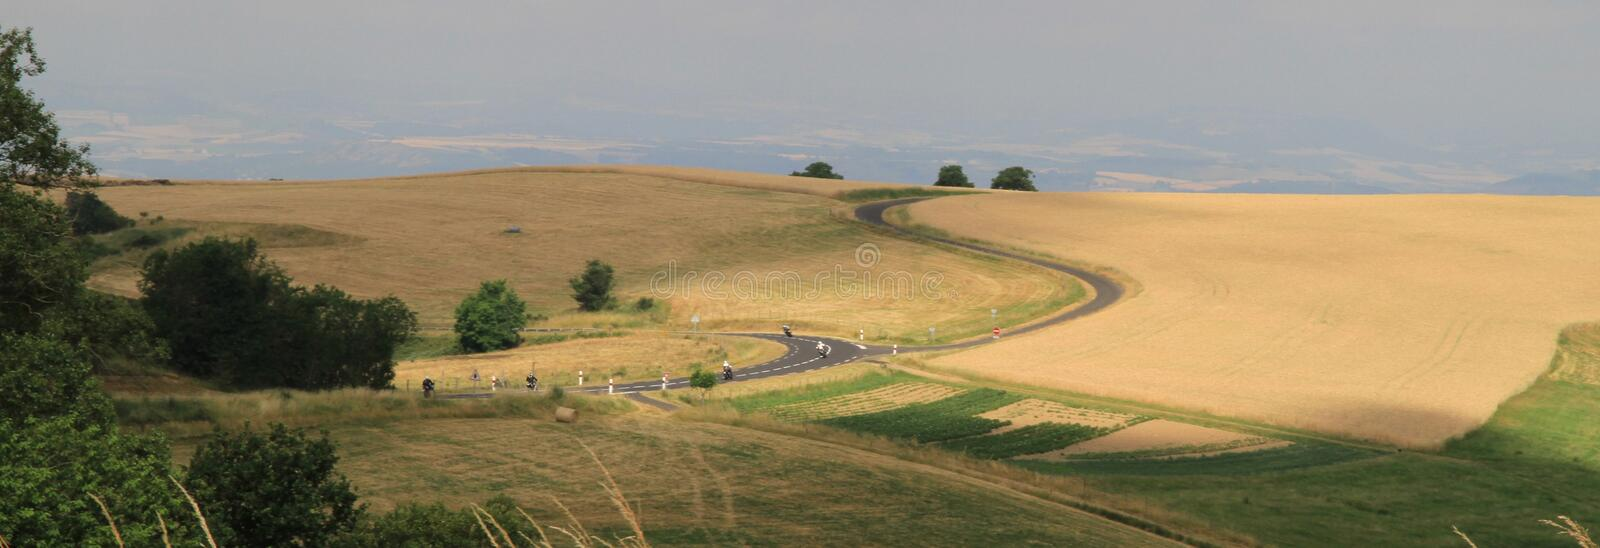 Twisting roads in the Auvergne wheat fields in France. Motorcycles scythe through the landscape with patchwork fields below the high ground of wheat fields and royalty free stock photo